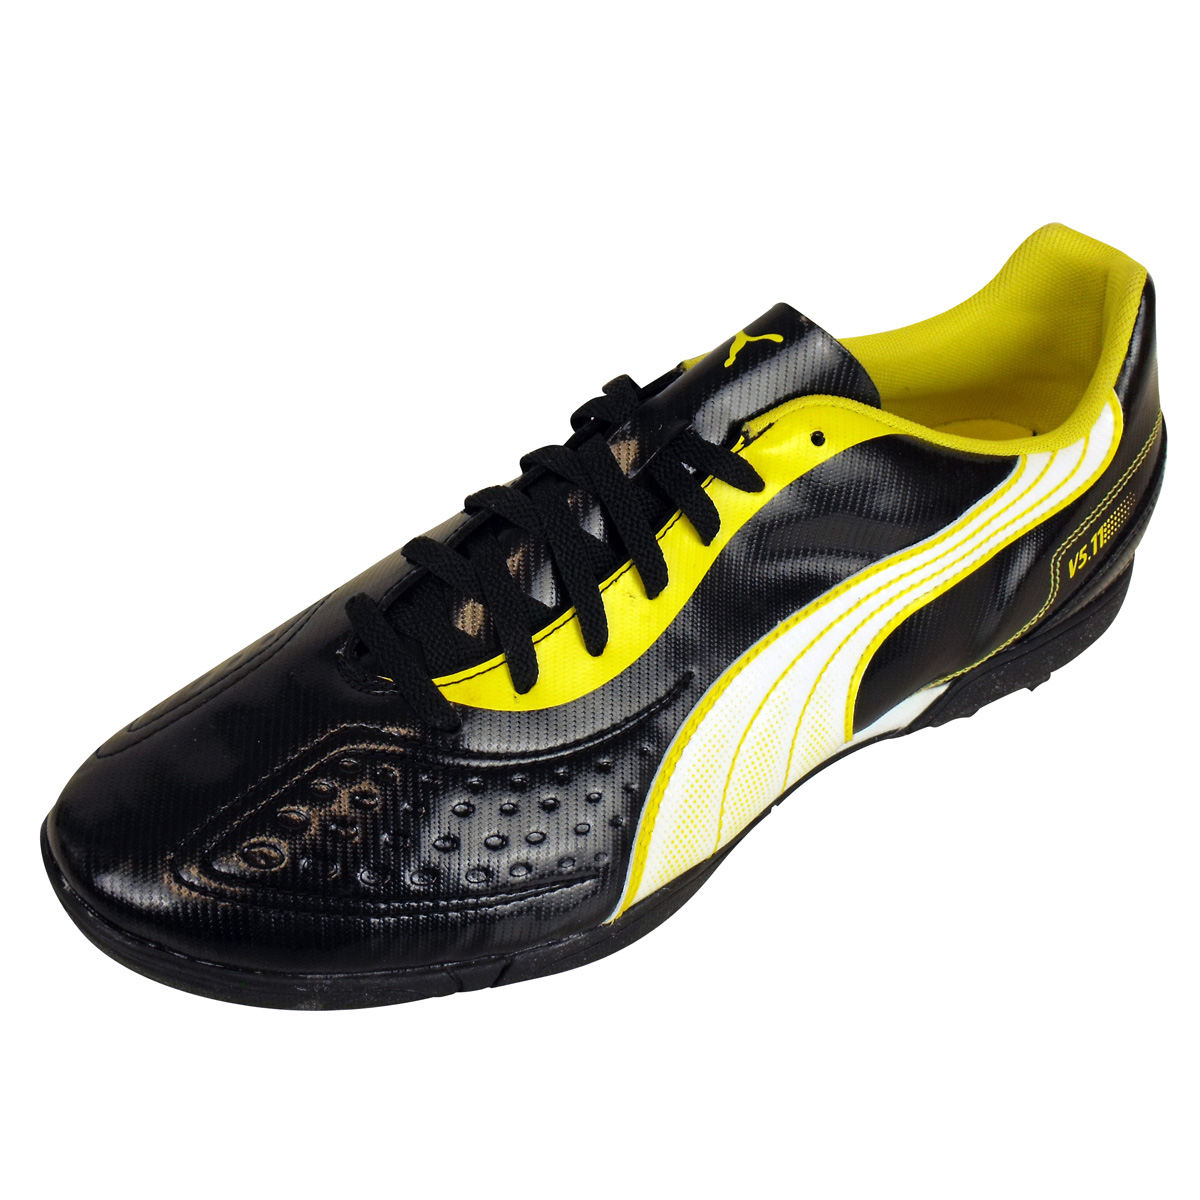 Mens-Puma-Football-Astro-Turf-TT-Trainer-Soccer-Trainers-Astros-Size-UK-6-13